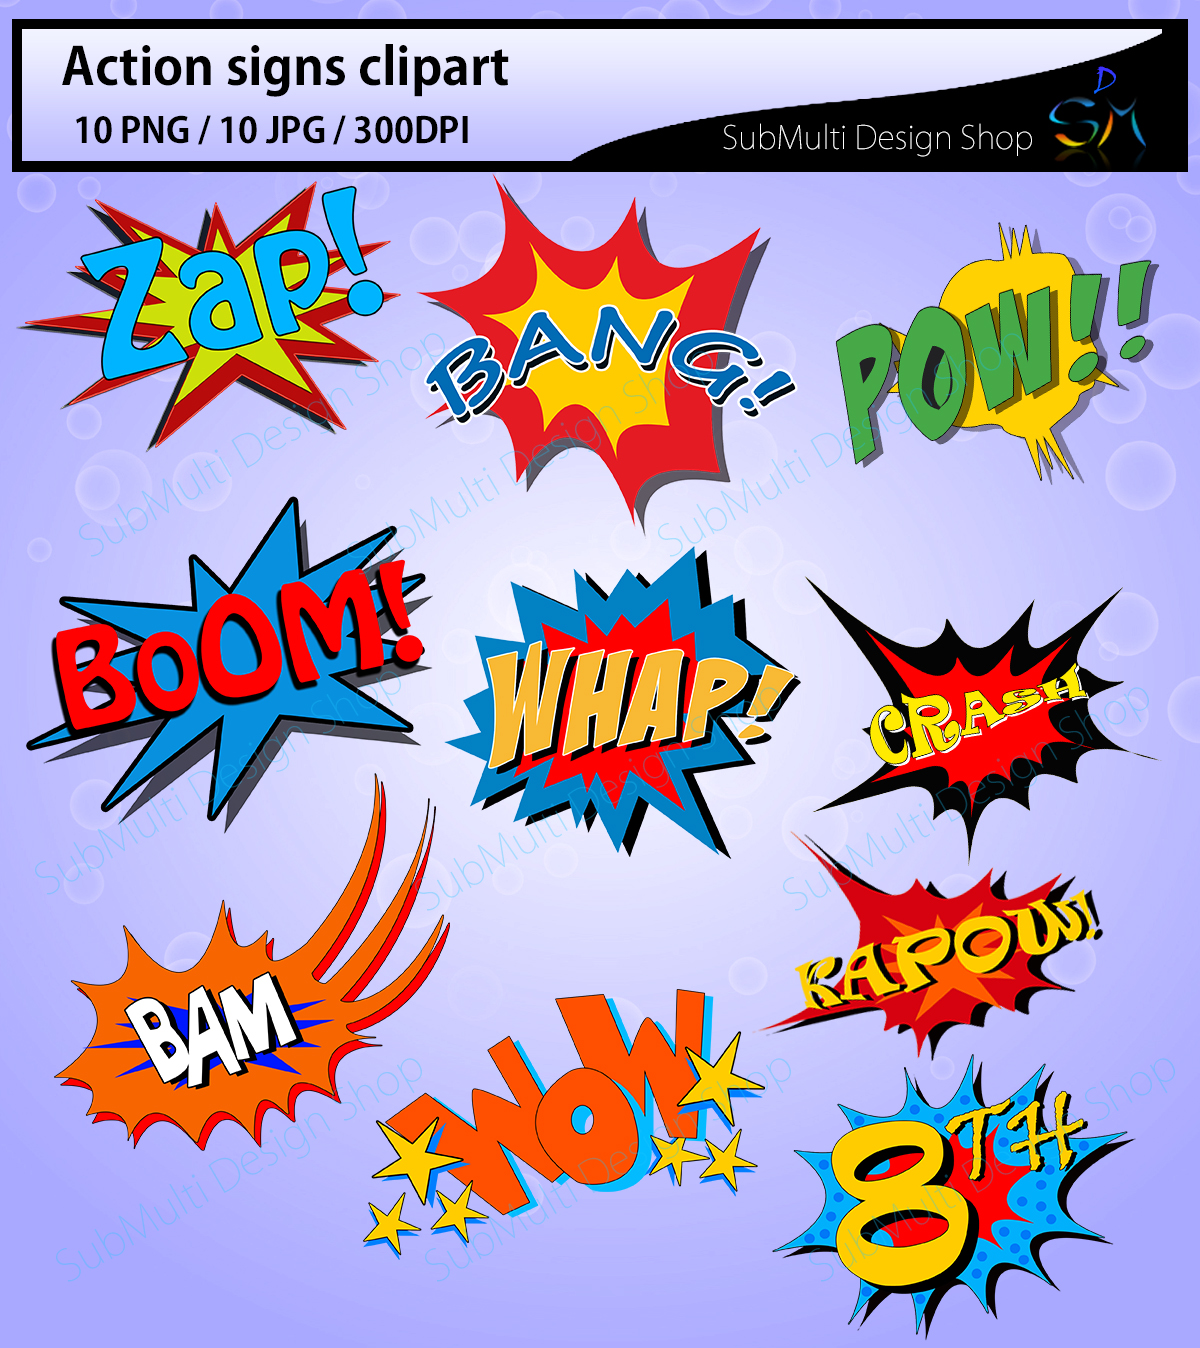 action signs / High Quality clipart / action sign silhouette / zap clipart / bang clipart / pow clipart / boom clipart /pop art / comic book example image 3